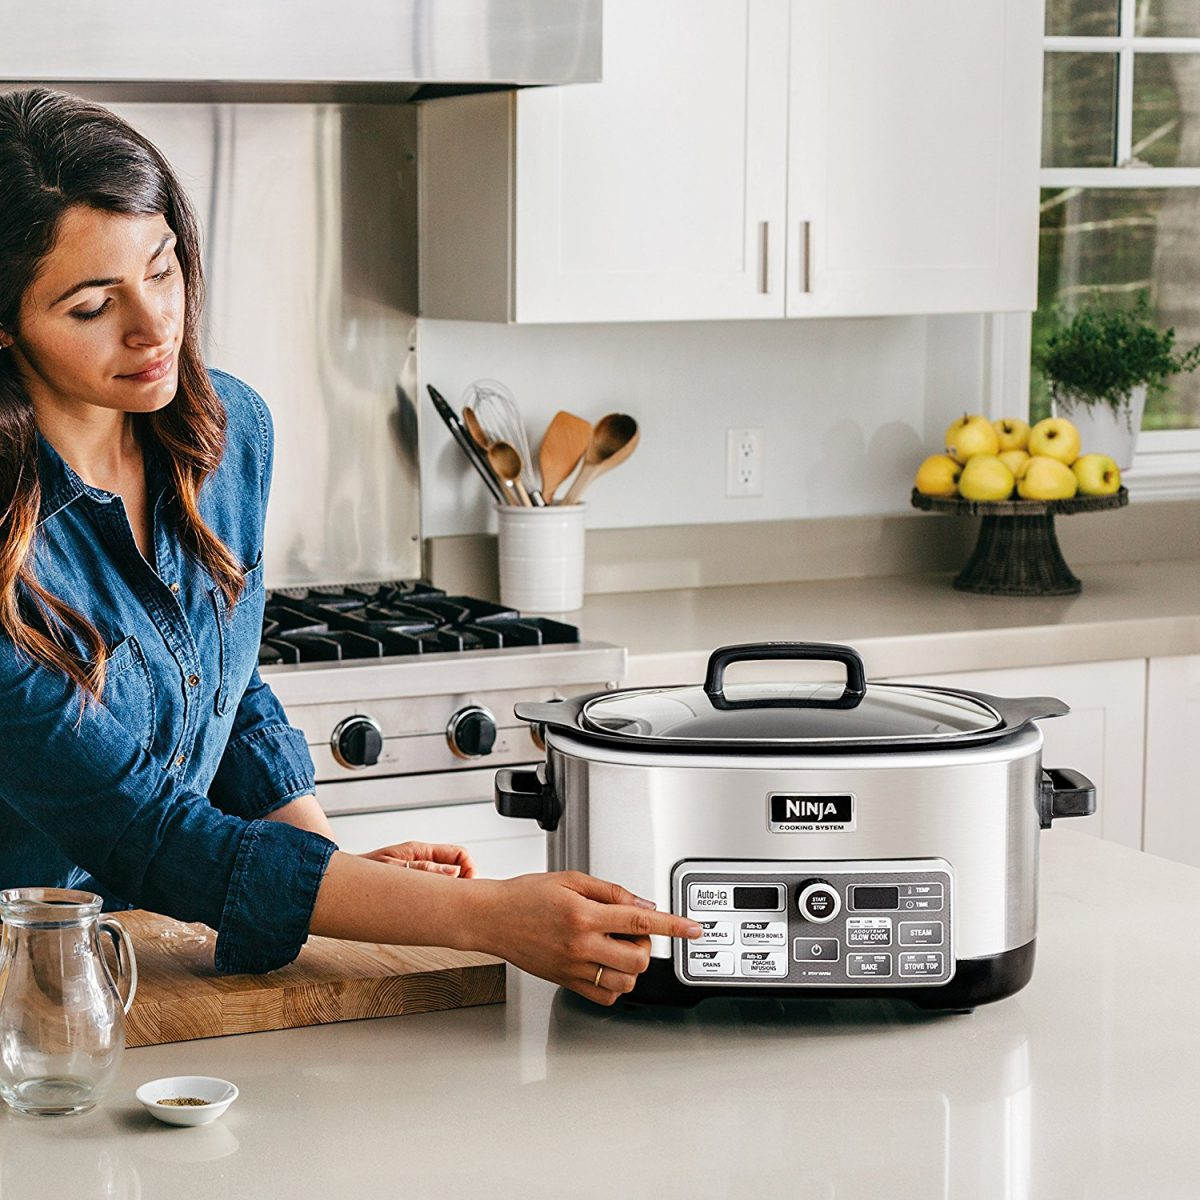 Ninja Kitchen Slow Cooker